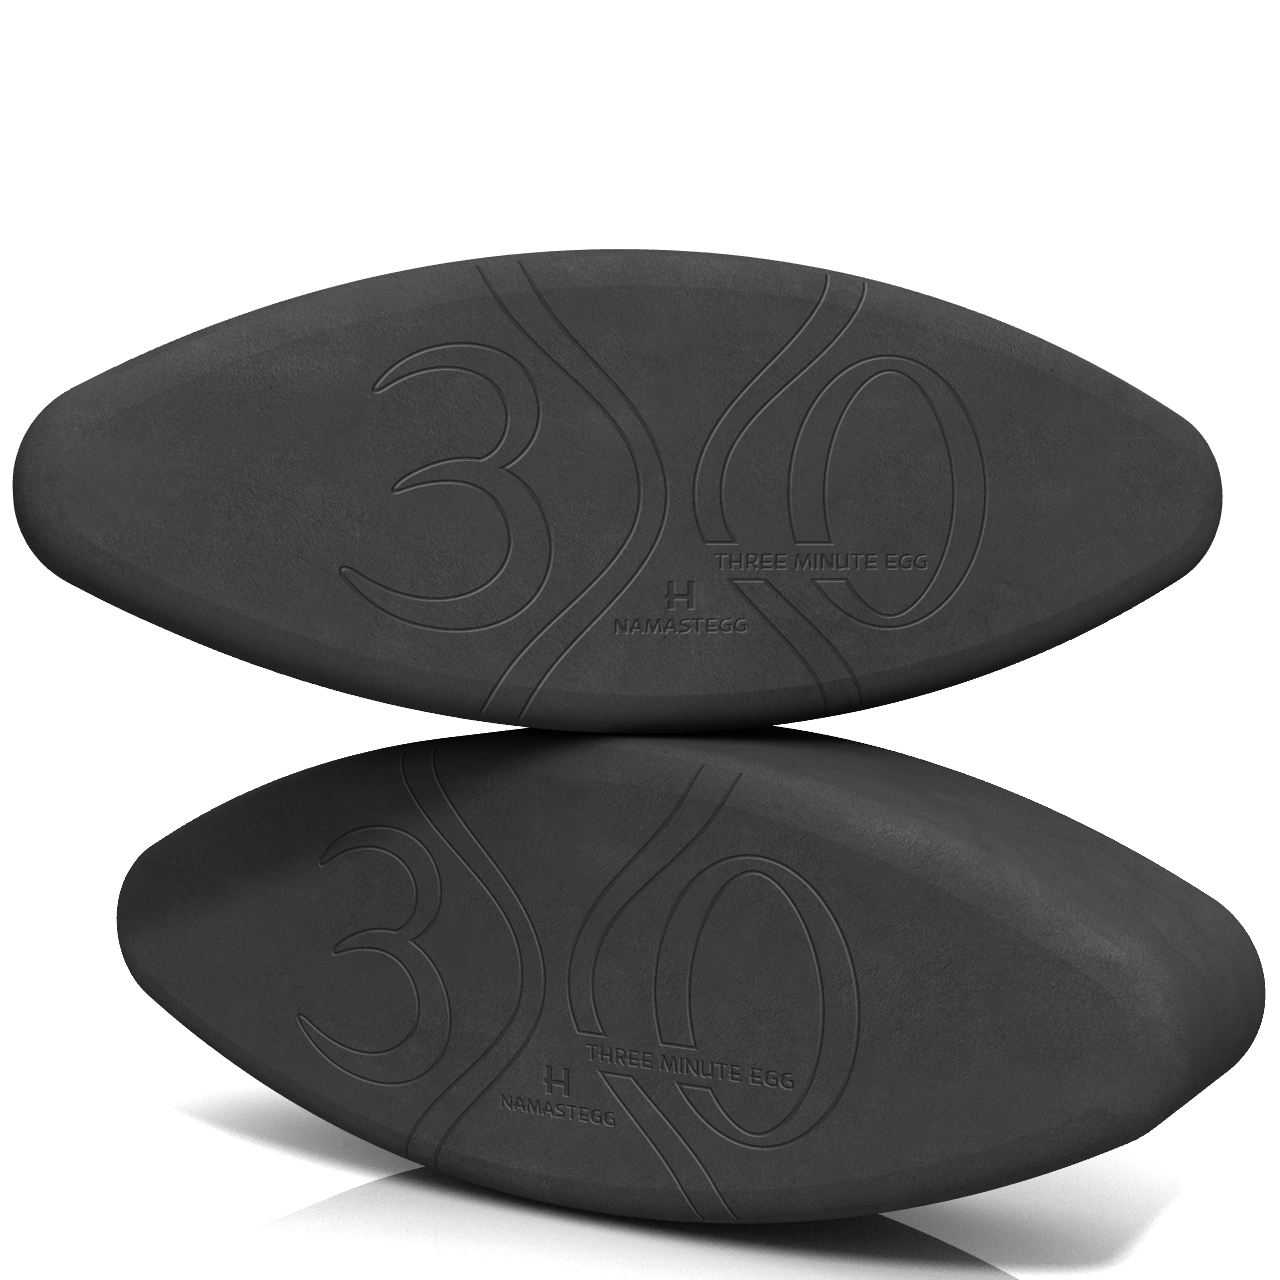 Best Yoga Gifts for Him - Yoga Egg Block Set Eggsecutive Charcoal Gray